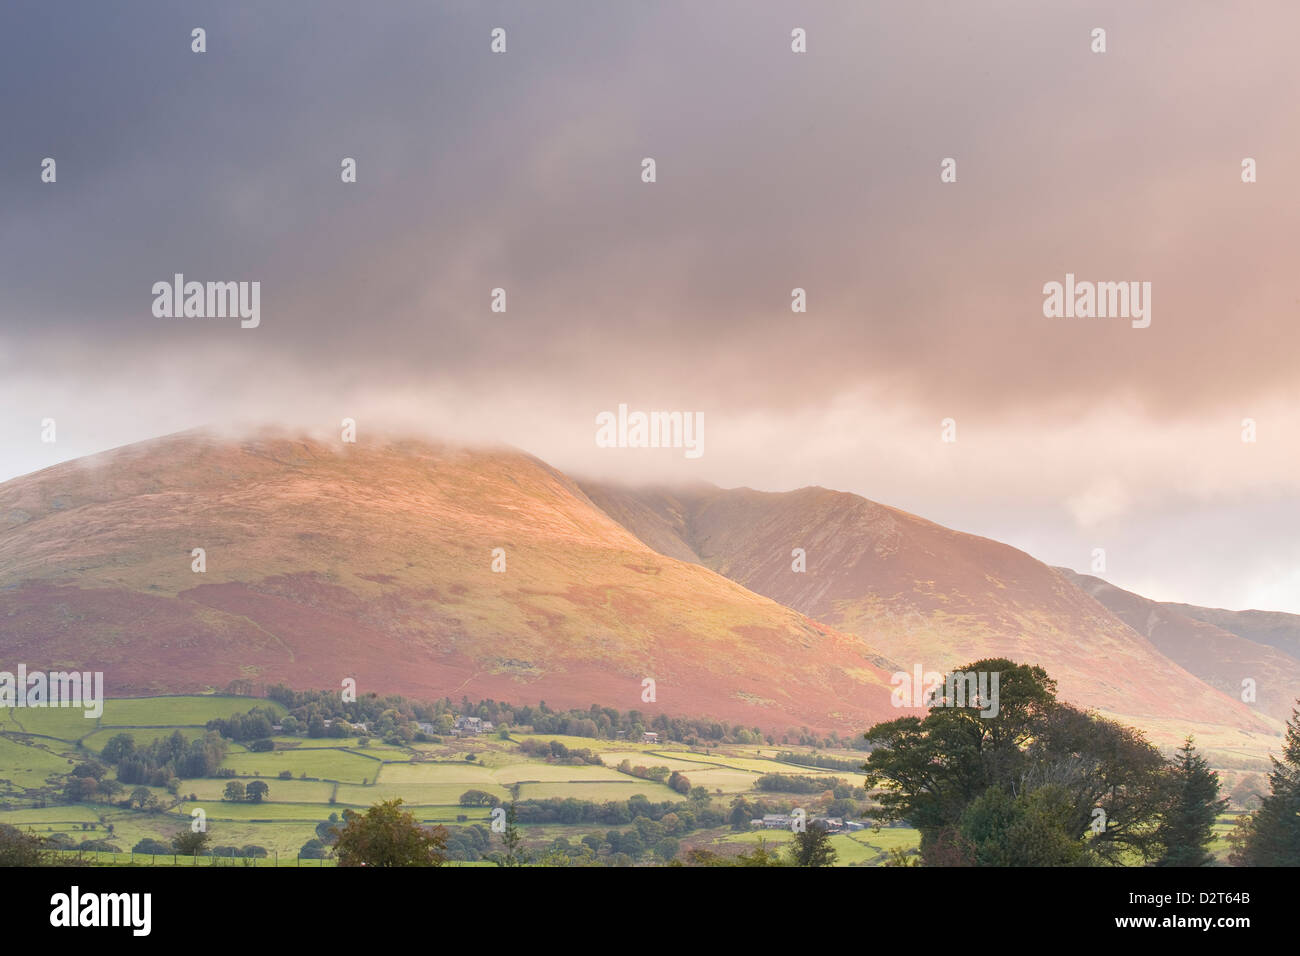 The fell of Blencartha in the Lake District National Park, Cumbria, England, United Kingdom, Europe - Stock Image